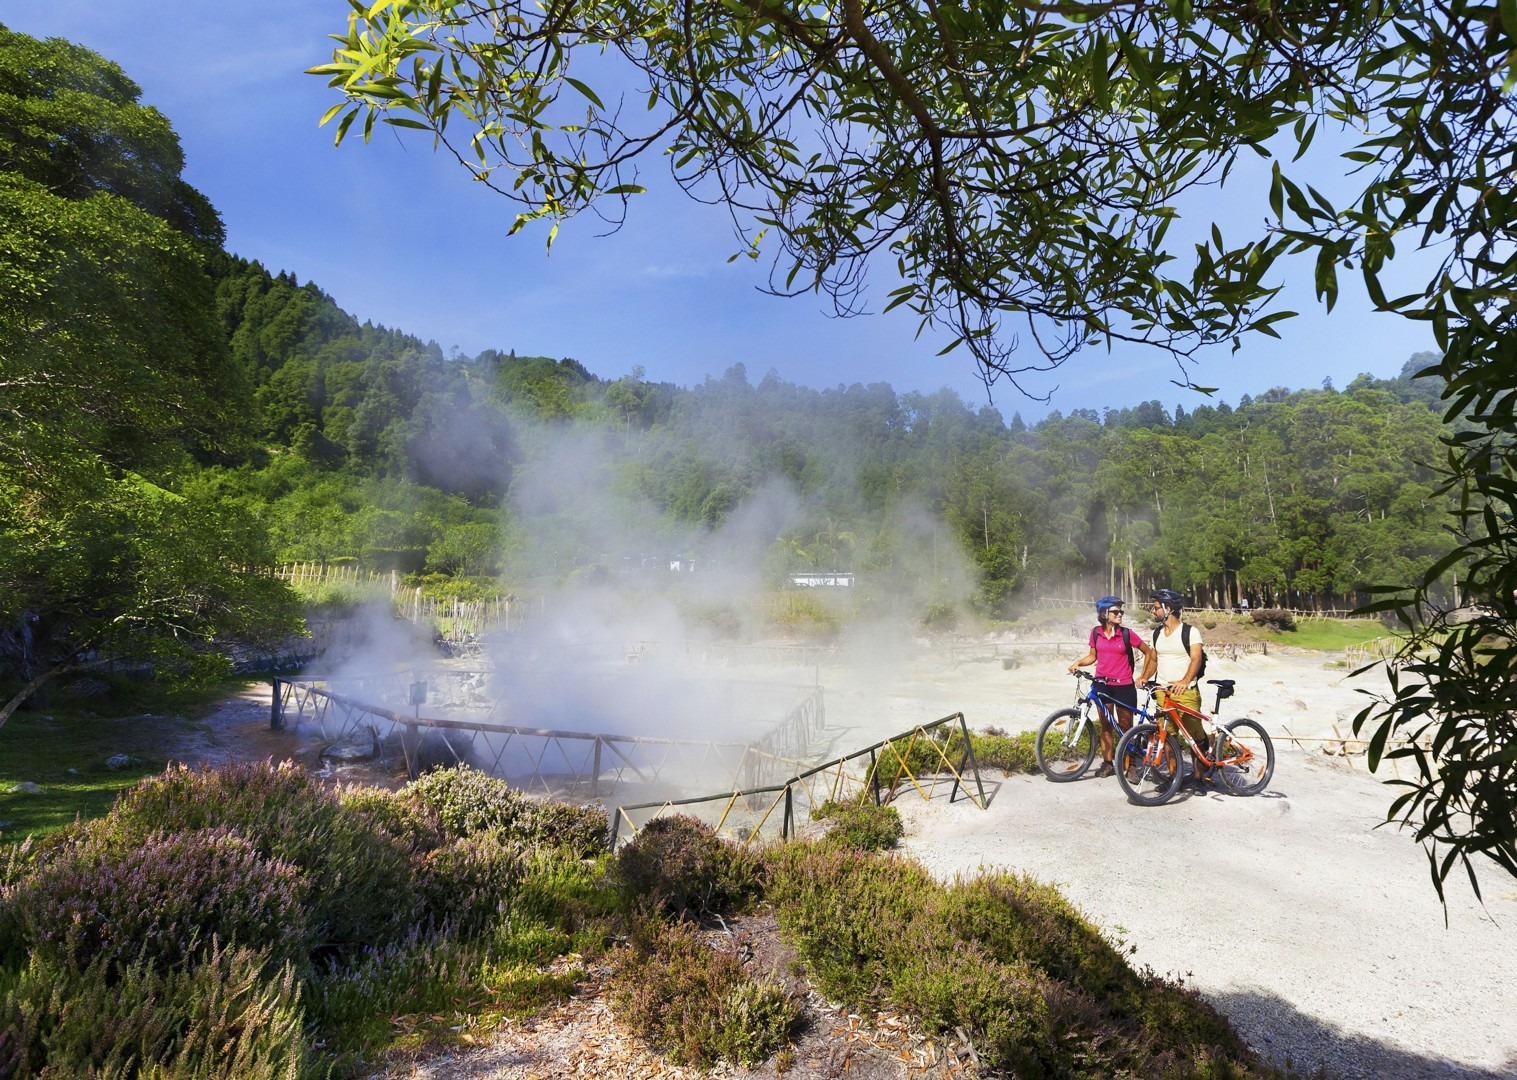 guided-leisure-cycling-holiday-azores-islands.jpg - The Azores - Islands and Volcanoes - Guided Leisure Cycling Holiday - Leisure Cycling